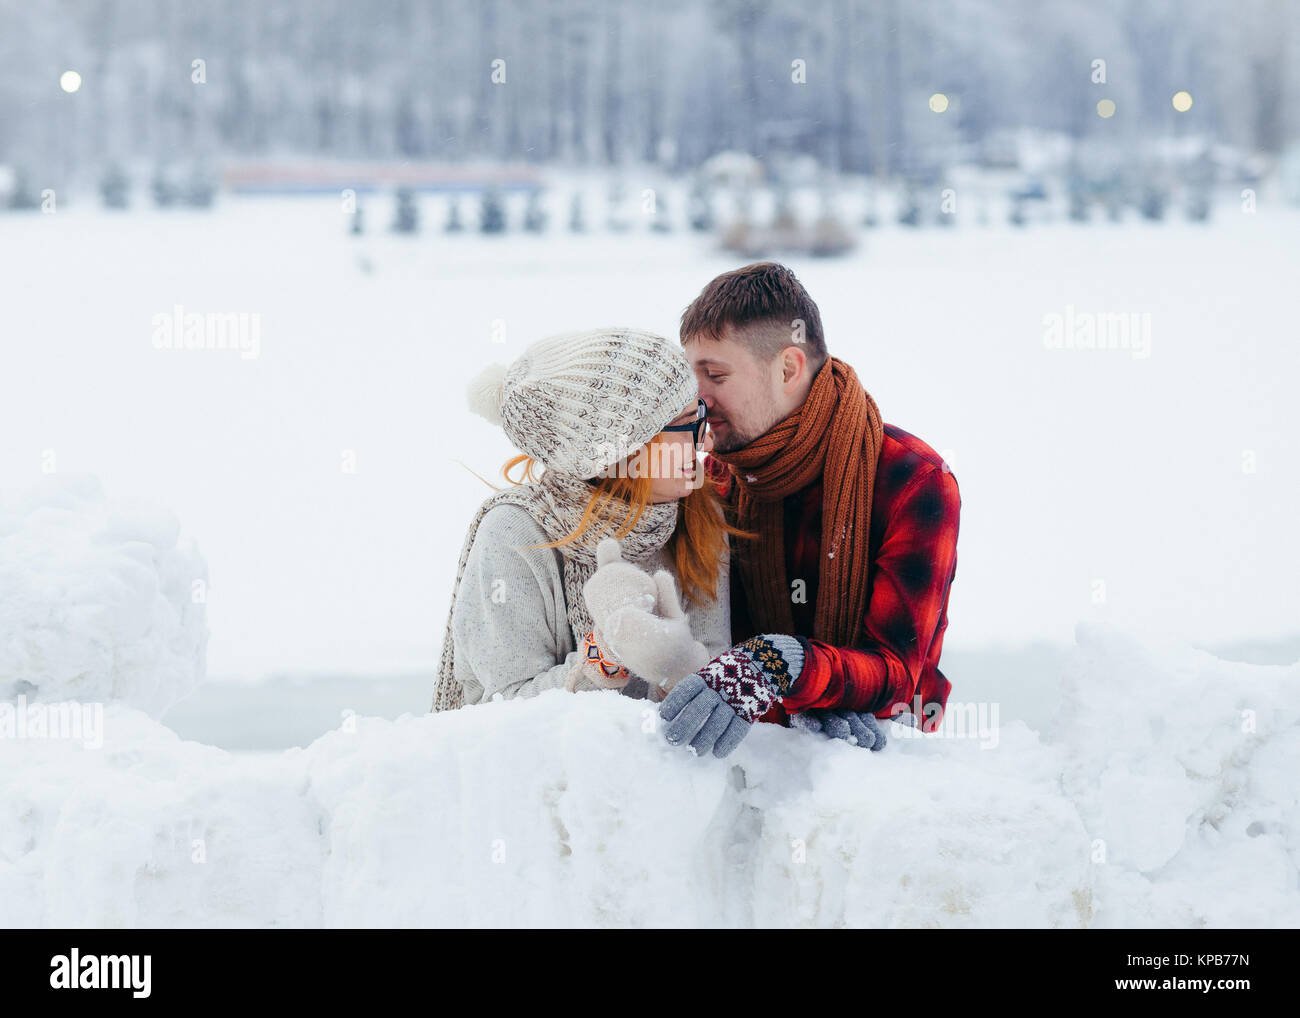 The handsome man is whispering something funny in the ear of his laughing girlfriend. Winter village location. Stock Photo